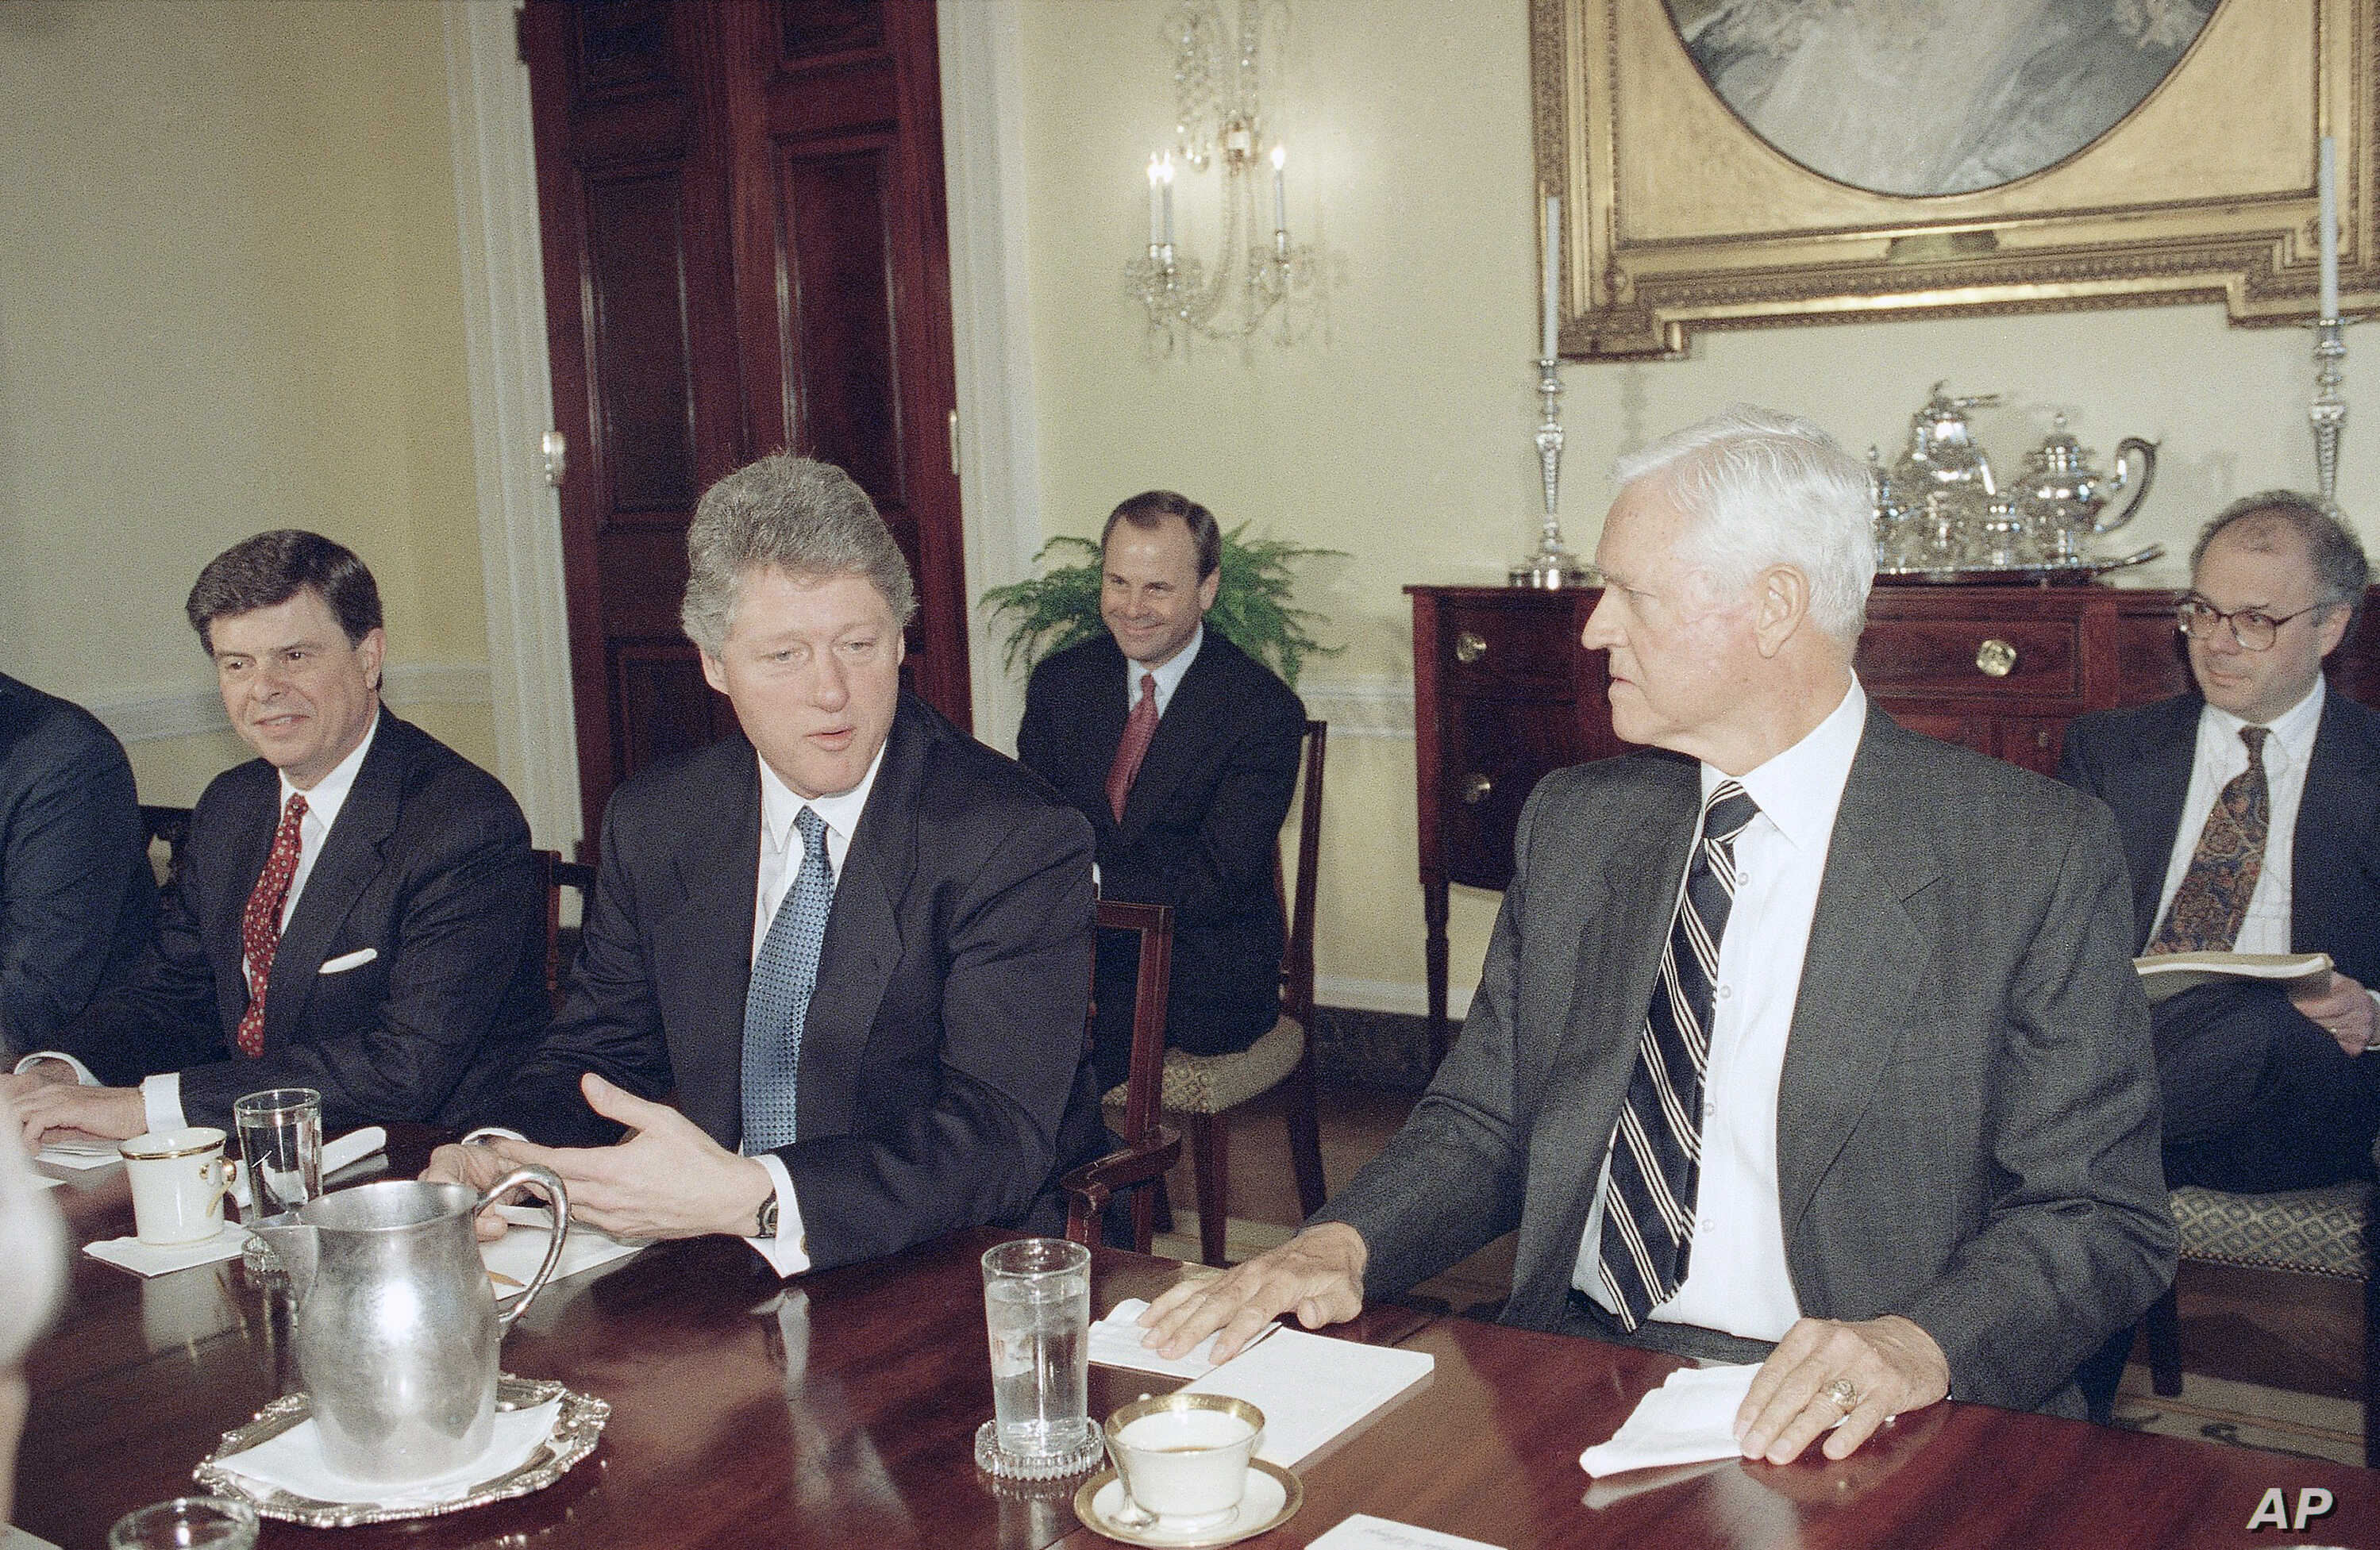 FILE - President Bill Clinton talks to Sen. Ernest Hollings, D-S.C., at the White House in Washington on March 9, 1993, during a meeting between the president and Democrats to discuss the president's economic package.